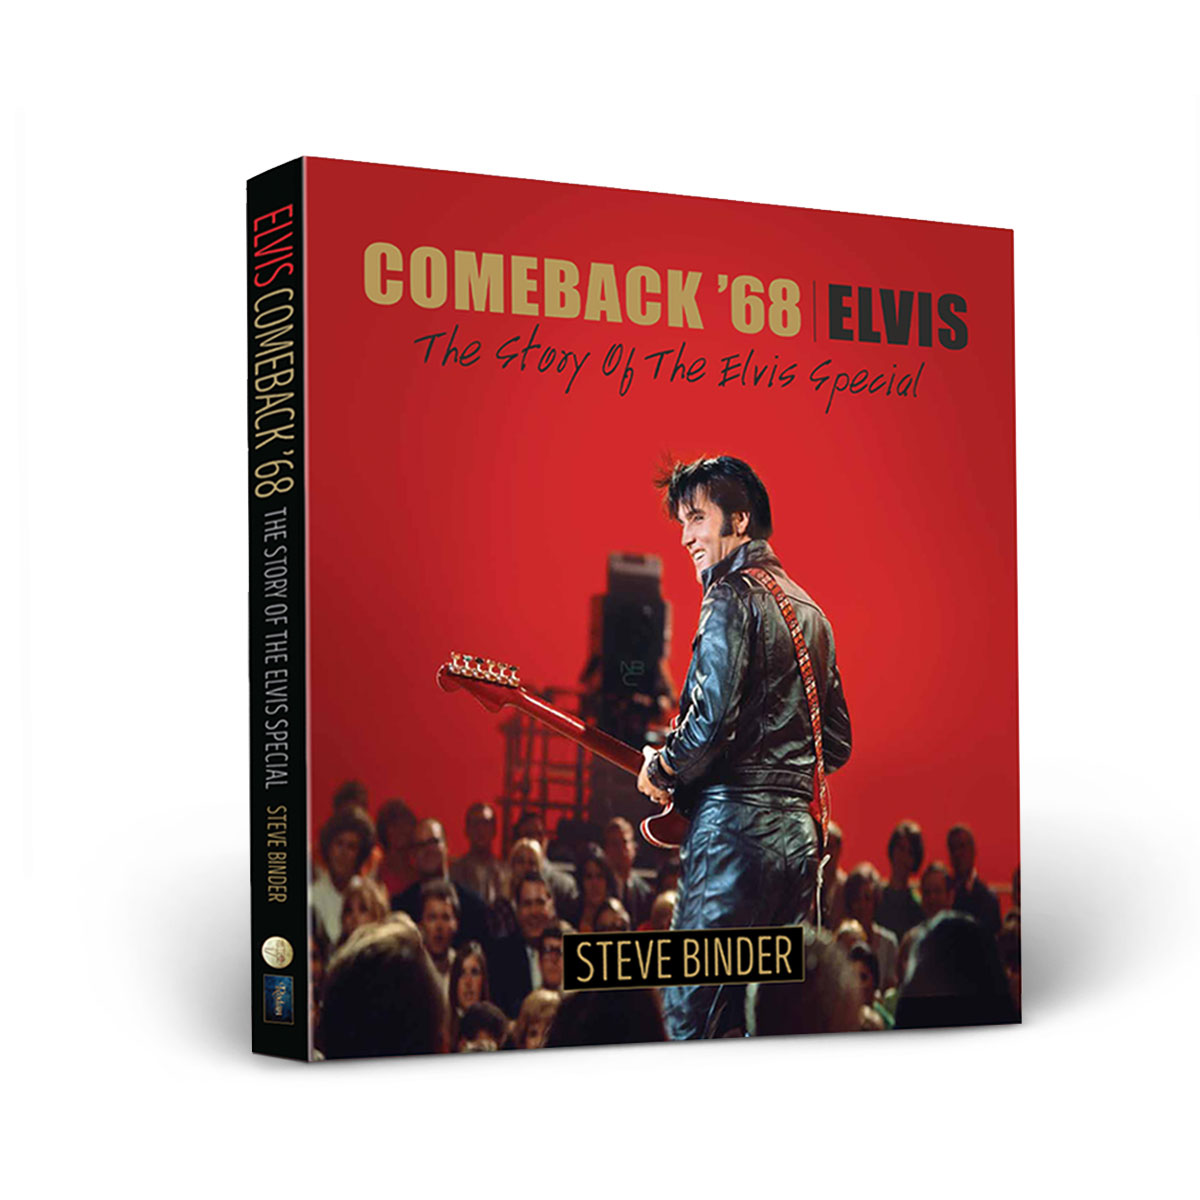 ELVIS Comeback '68 - The Story of the Elvis Special by Steve Binder